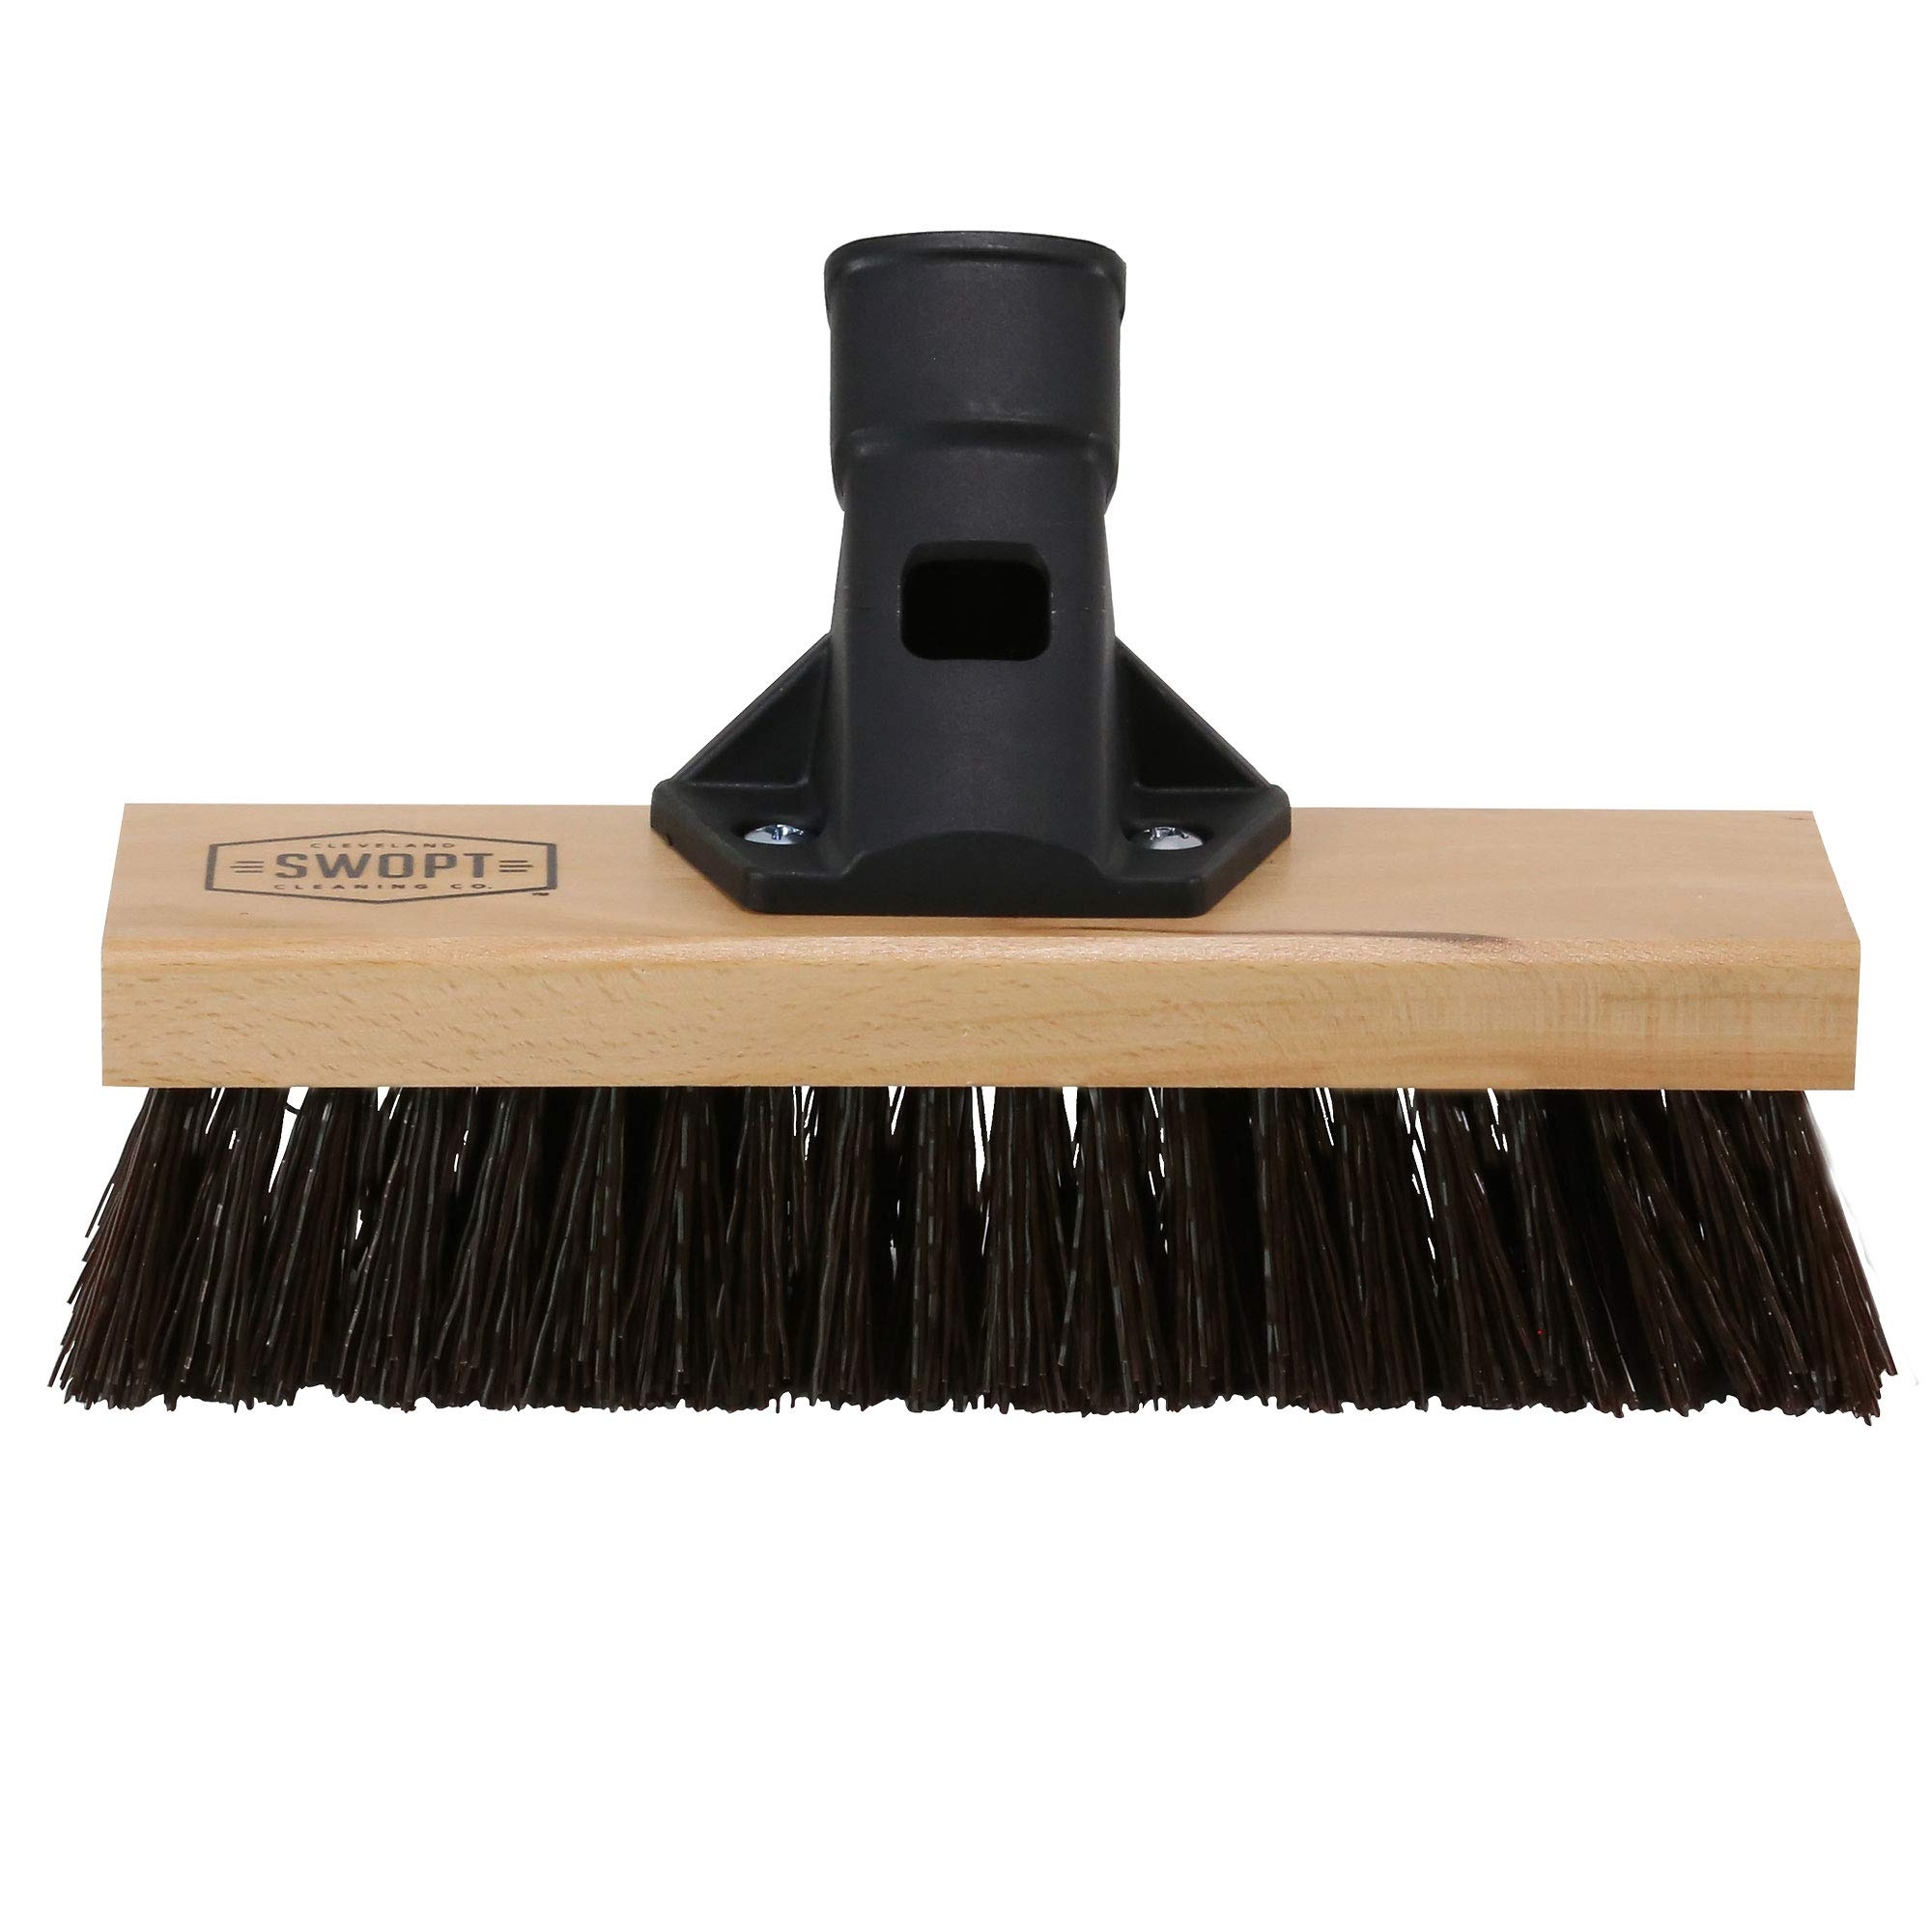 """SWOPT 10"""" Premium Rough Surface Deck Brush Head – Deck Brush for Heavy-Duty Scrubbing Rough and Textured Surfaces – Interchangeable with Other SWOPT Products for More Efficient Cleaning and Storage, Head Only, Handle Sold Separately, 5131C6"""